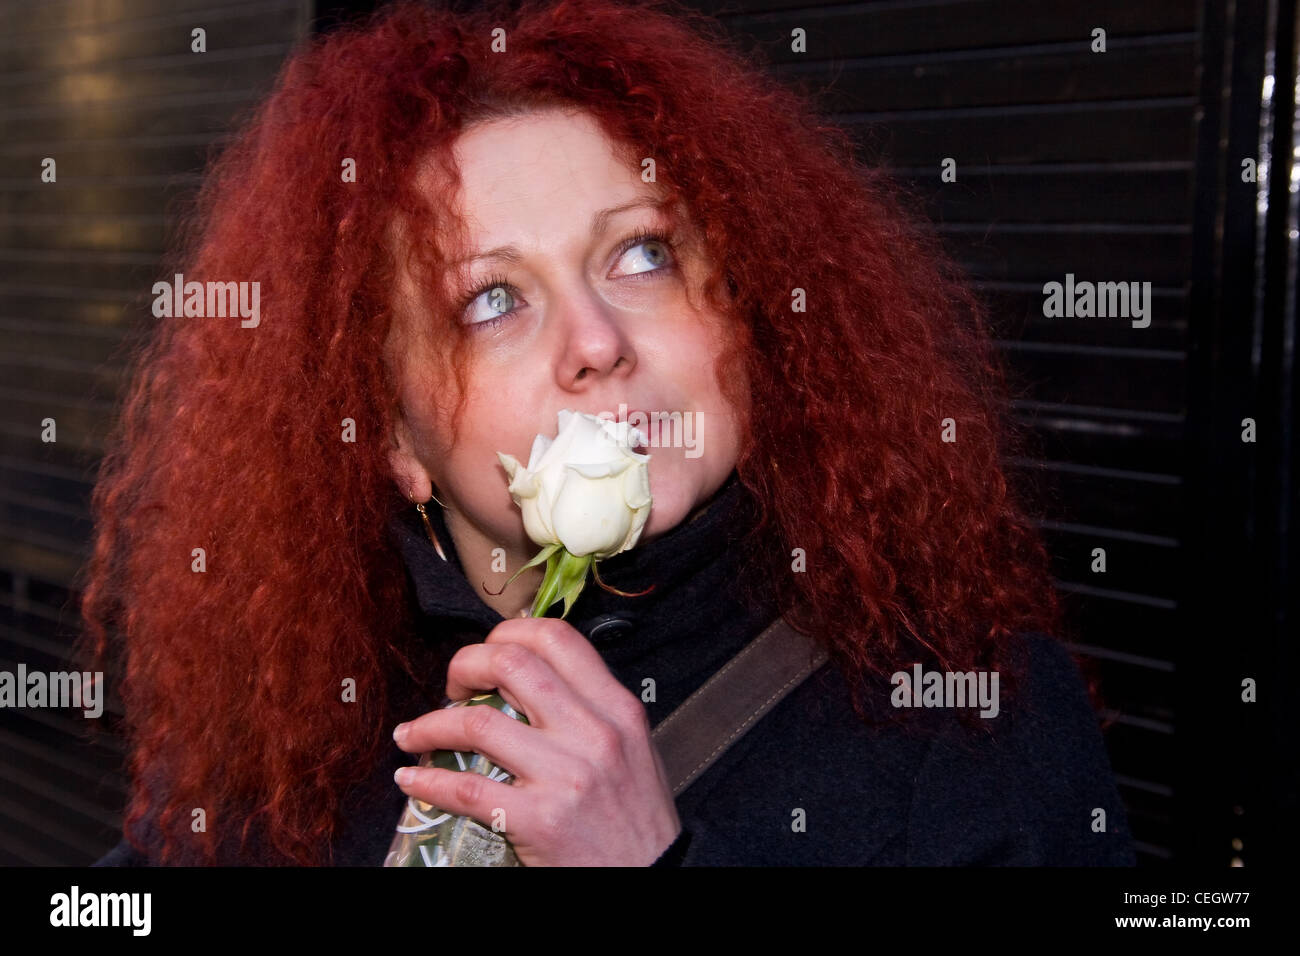 Beautiful woman with red hair holding a white Rose to her face outside a florist shop in Dundee, UK Stock Photo